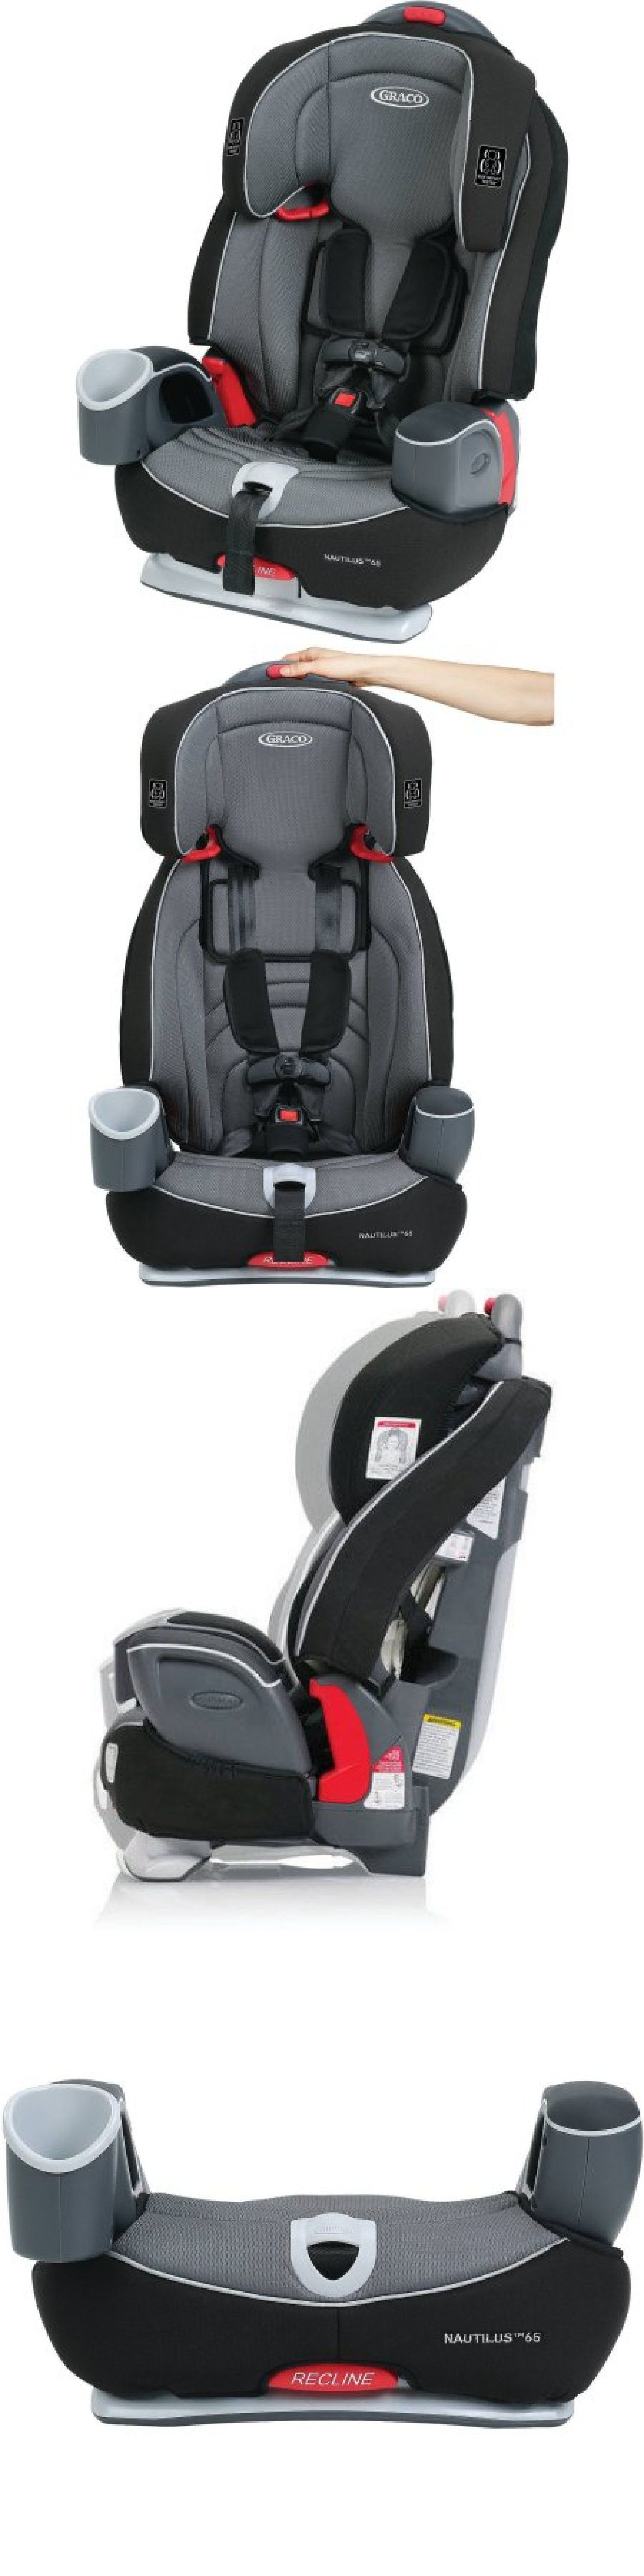 Booster To 80lbs 66694 Graco Nautilus 65 3 In 1 Multi Use Harness Baby Toddler Car Seat Bravo BUY IT NOW ONLY 14662 On EBay